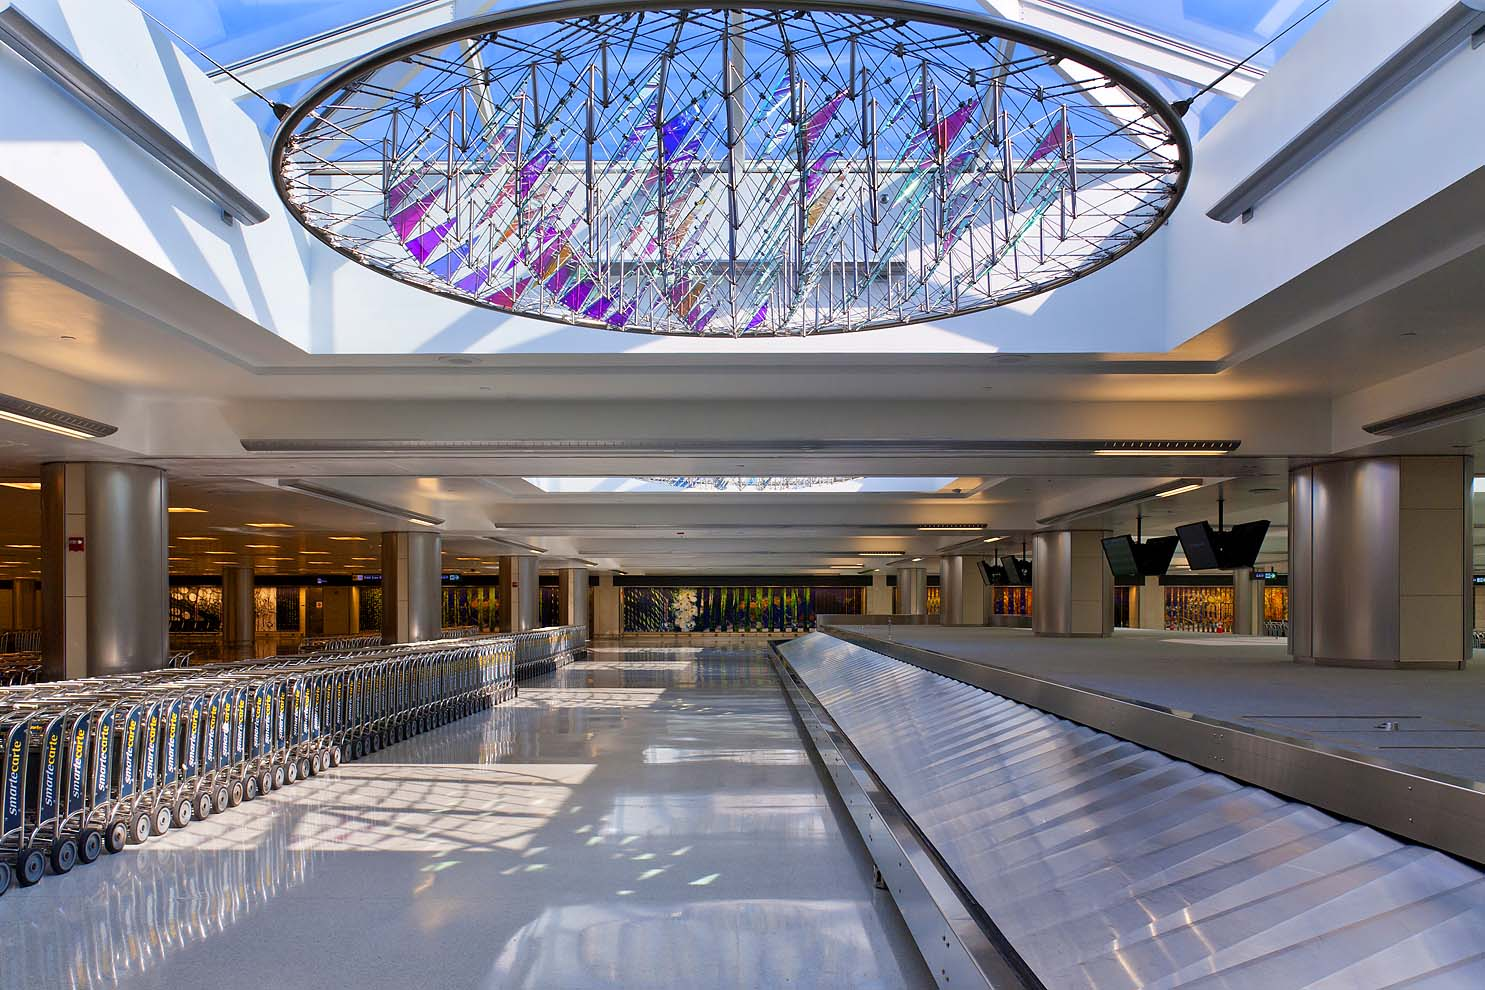 dichroic glass sculpture in skylight next to baggage carousel